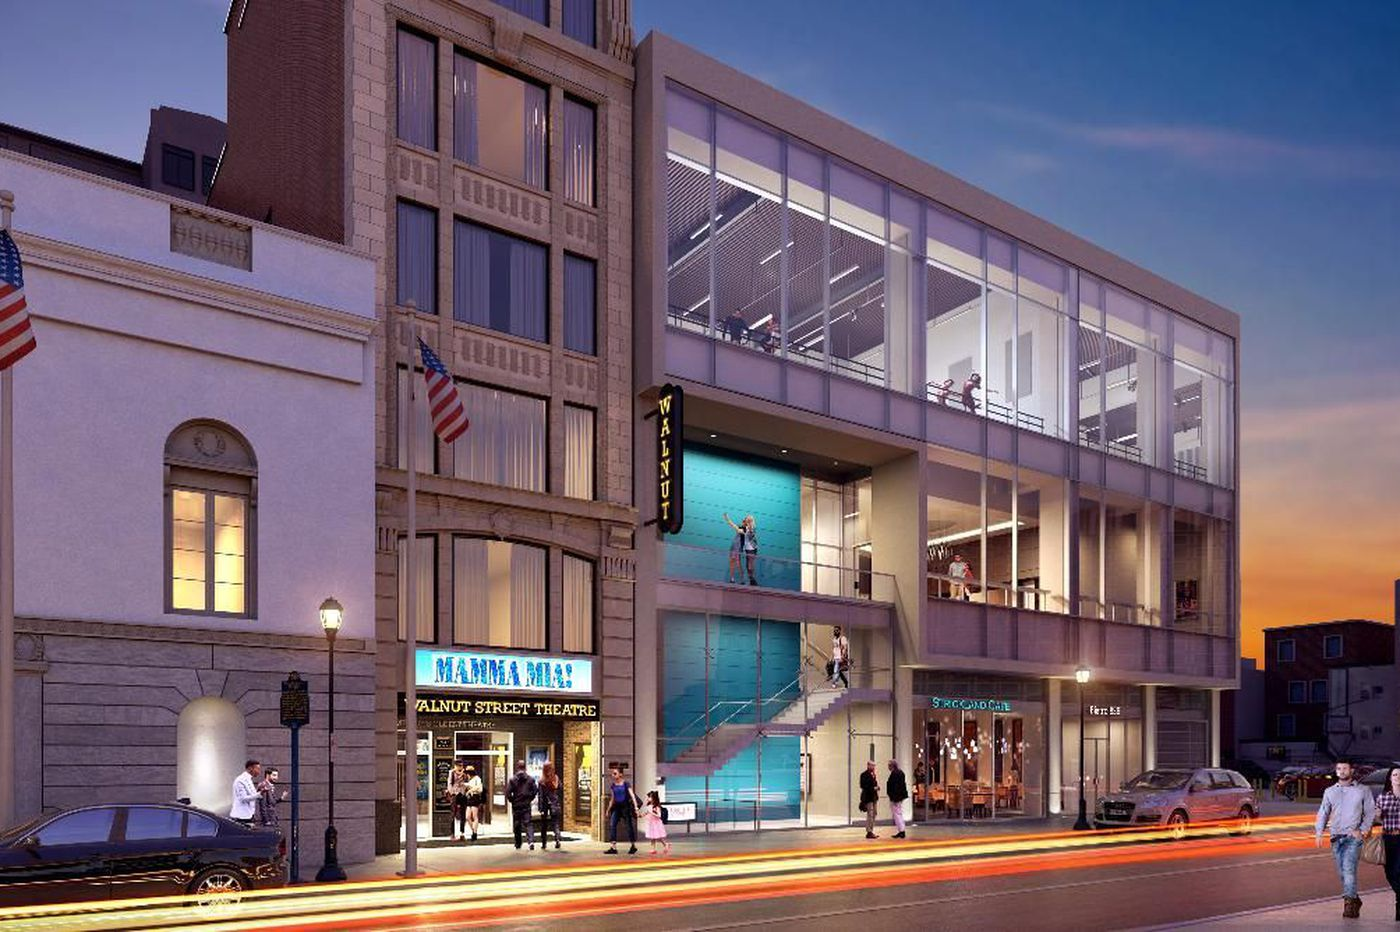 Walnut Street Theatre announces a major expansion, set to start in 2020